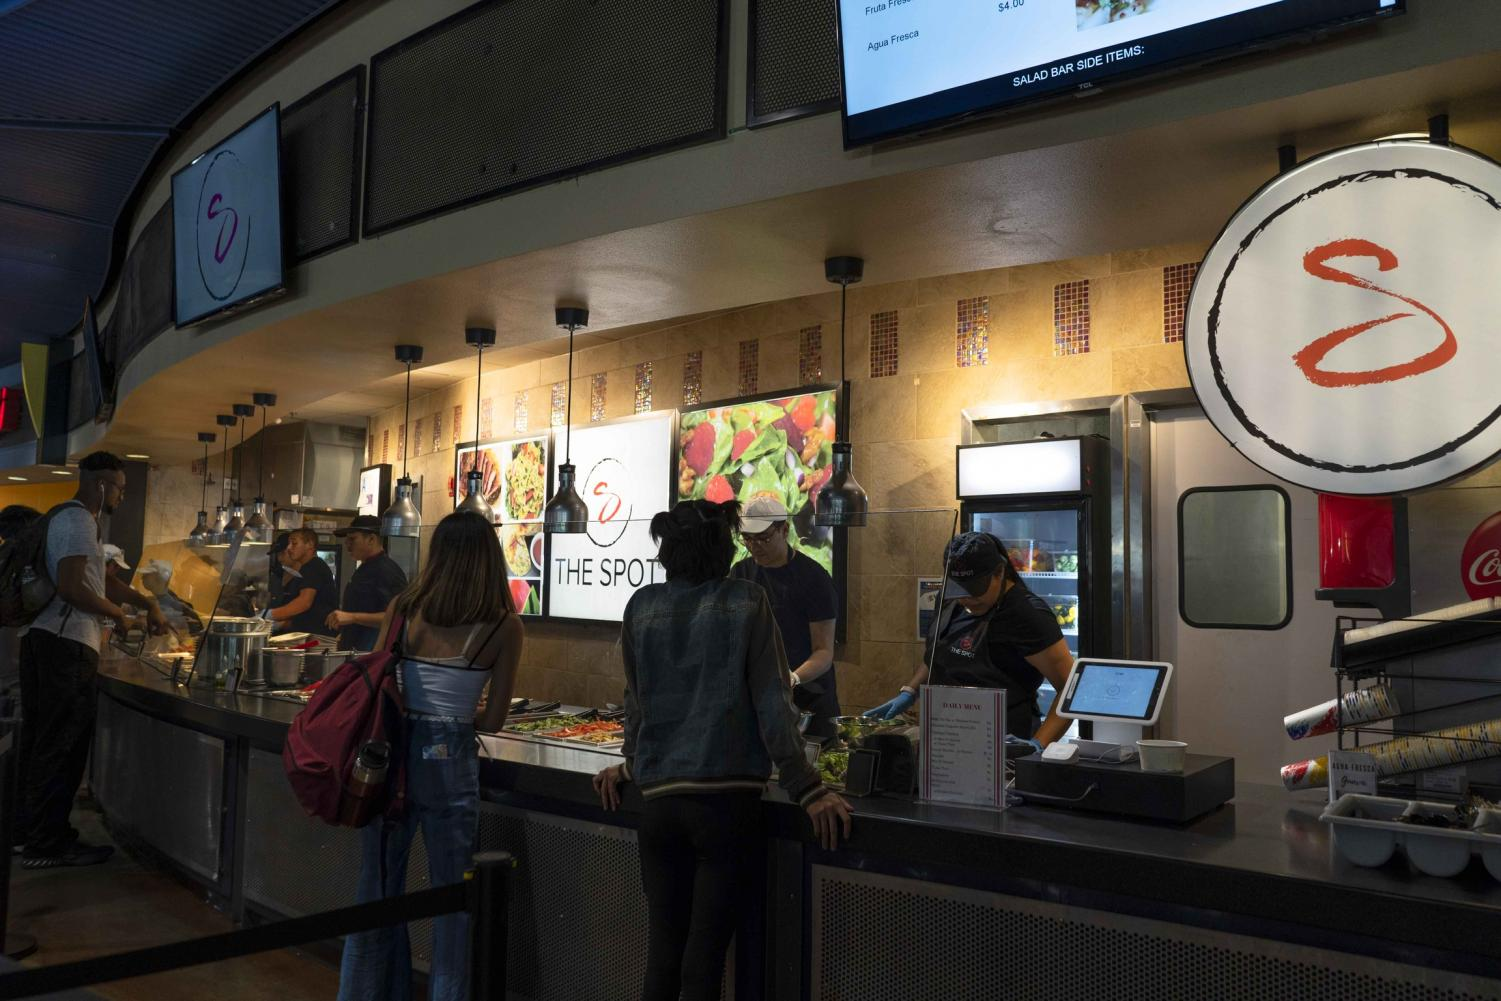 The Spot, a new dining option at the food court, has been a recent popular choice for food for students. The Spot is located in between Kikka Sushi and Johny's Kitchen.